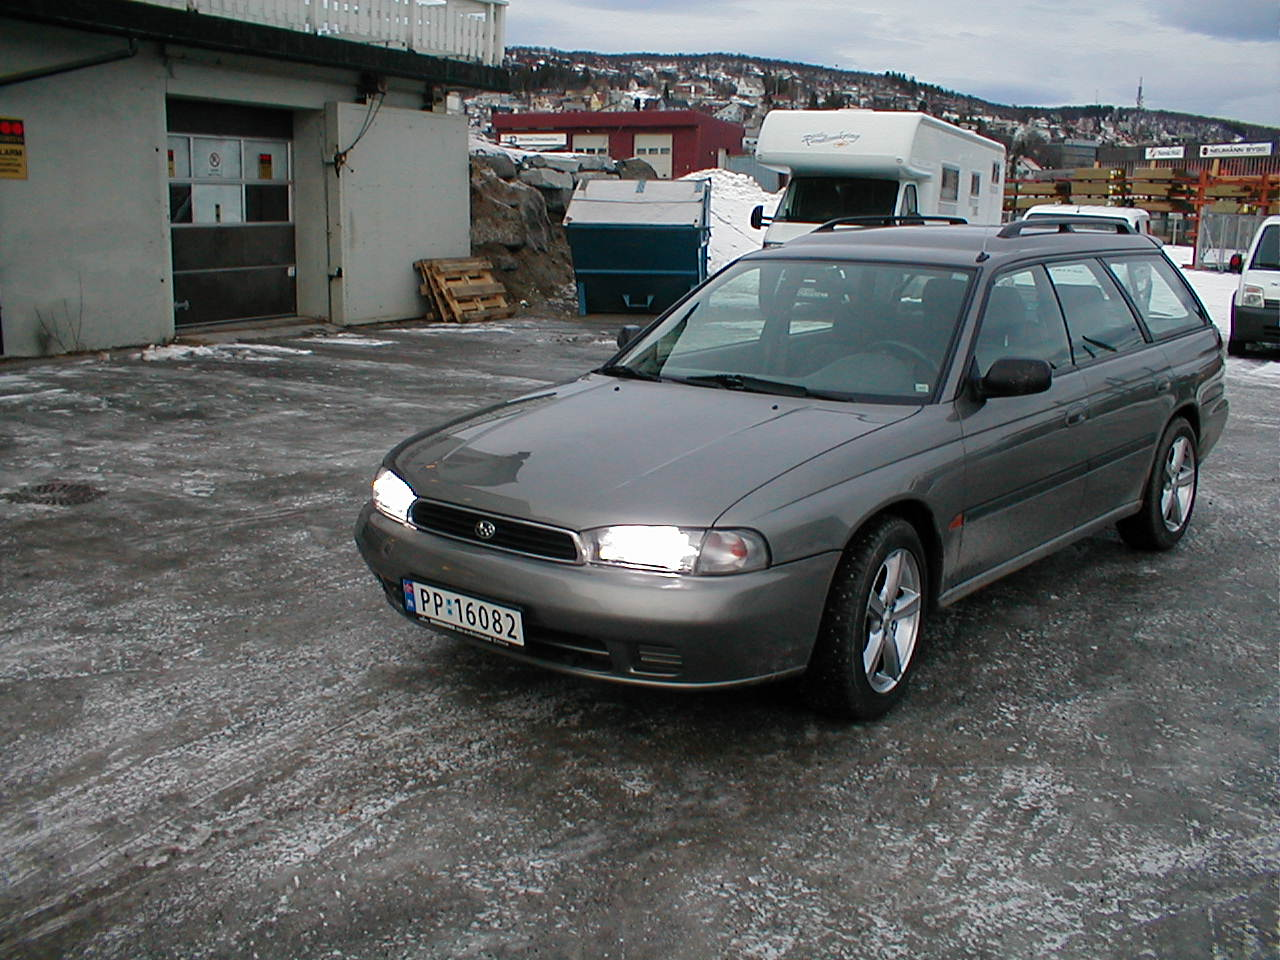 Right Hand Drive Subary Legacy RS for sale - RightDrive USA   1996 Subaru Legacy